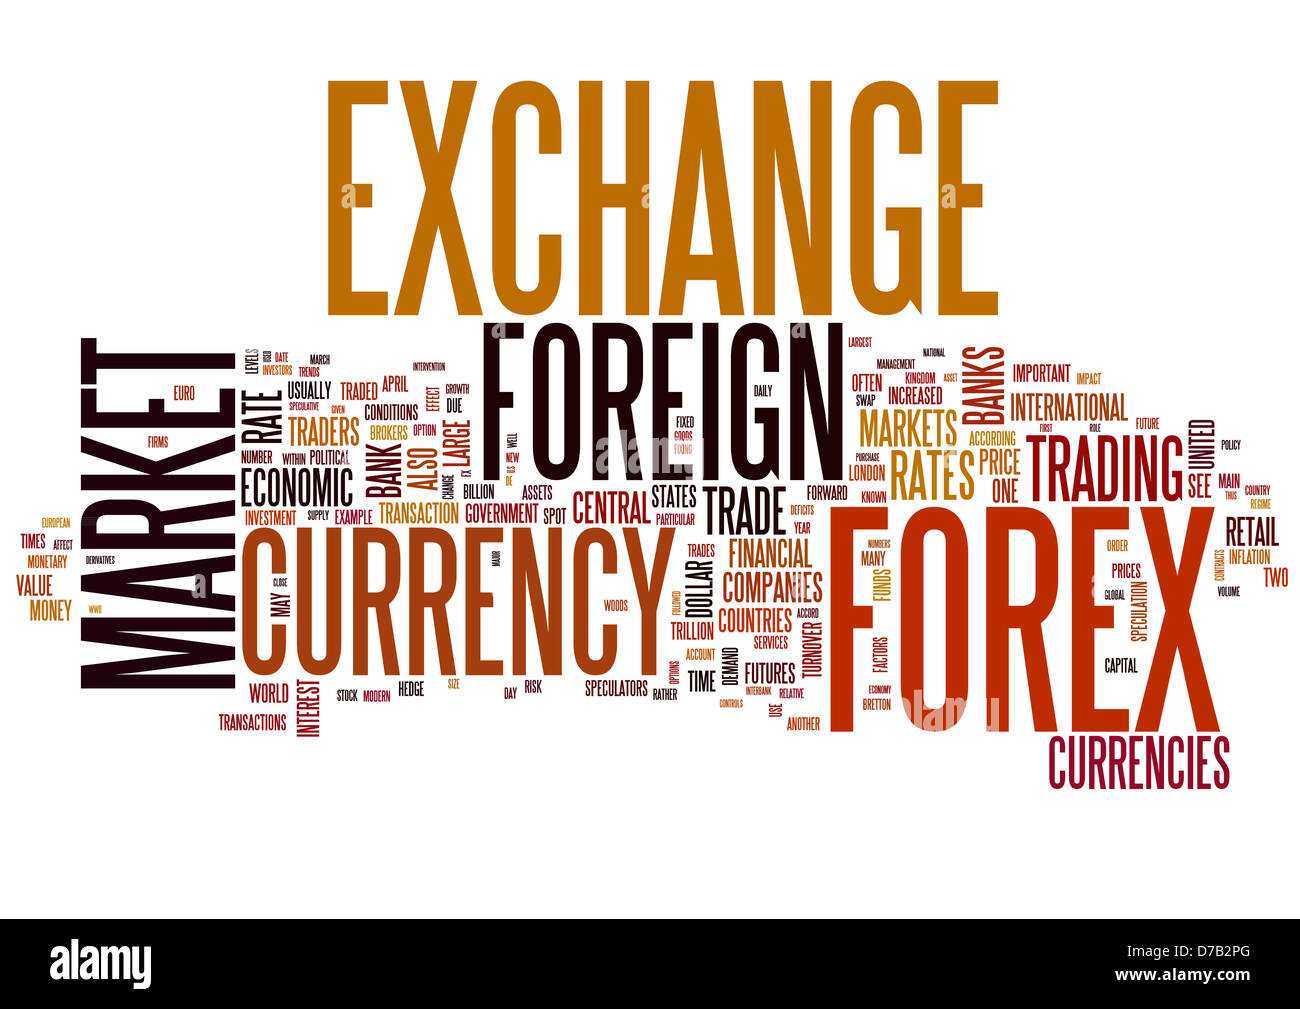 Forien exchange